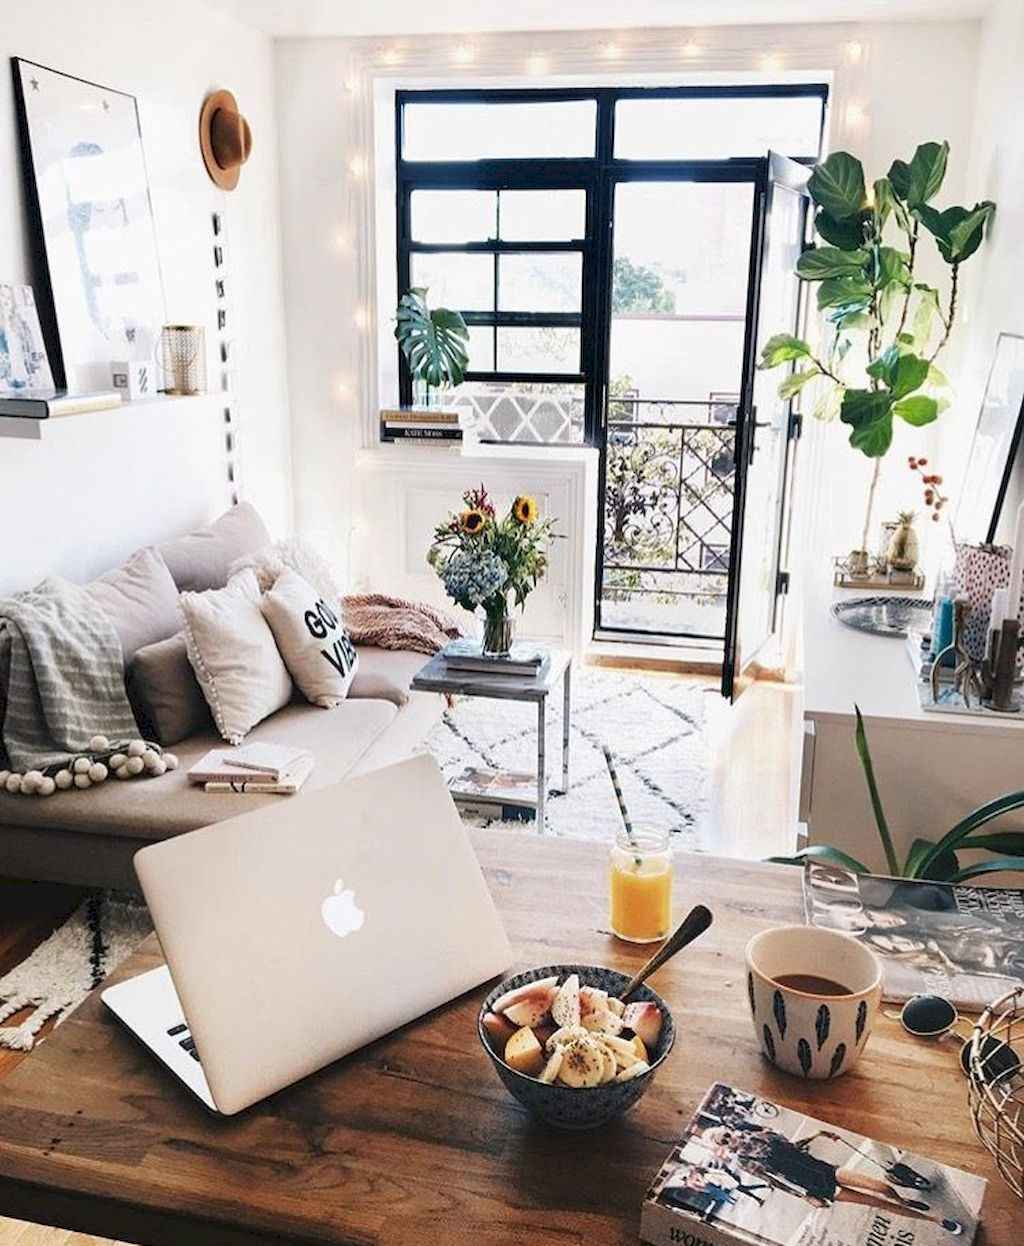 Clever college apartment decorating ideas on a budget (33)